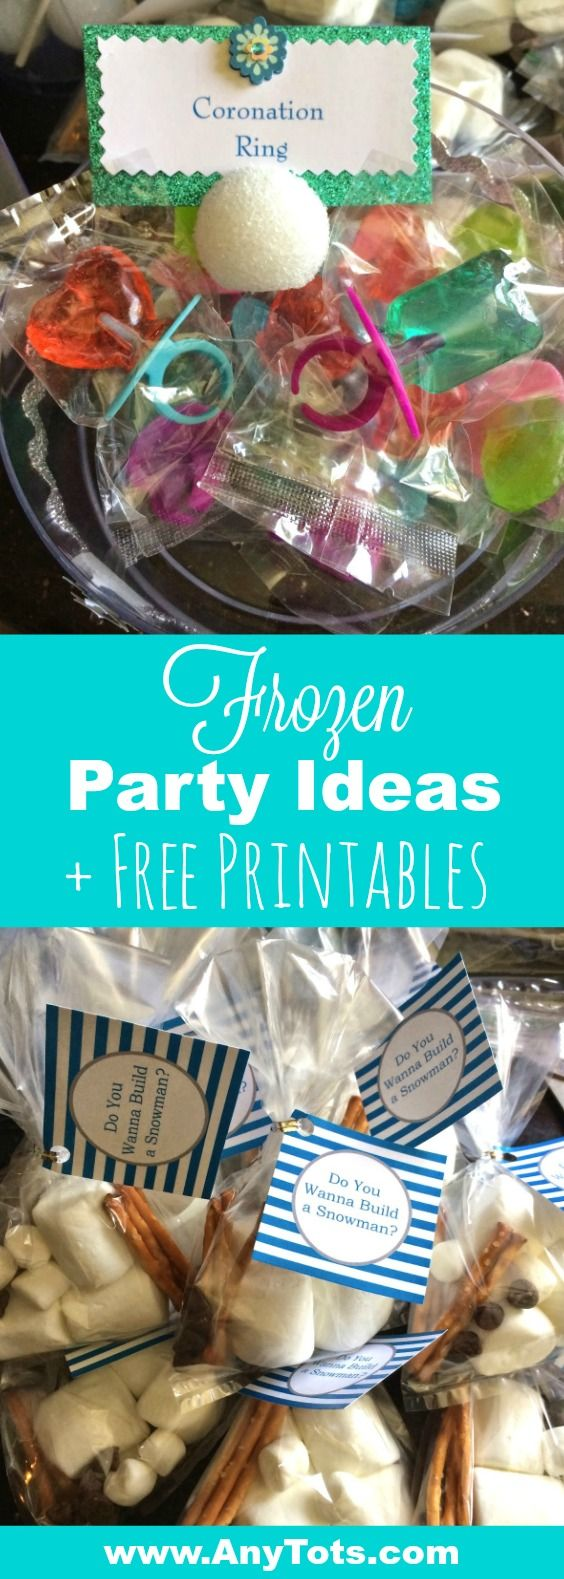 """Frozen Party Ideas plus Frozen Free Printable Favor Tag. Enjoy the """"do you wanna build a Snowman"""" Free Printable to go with your frozen treat bag and also add some coronation ring into your Frozen Birthday Party. More Frozen Free printable on the blog -> www.anytots.com"""